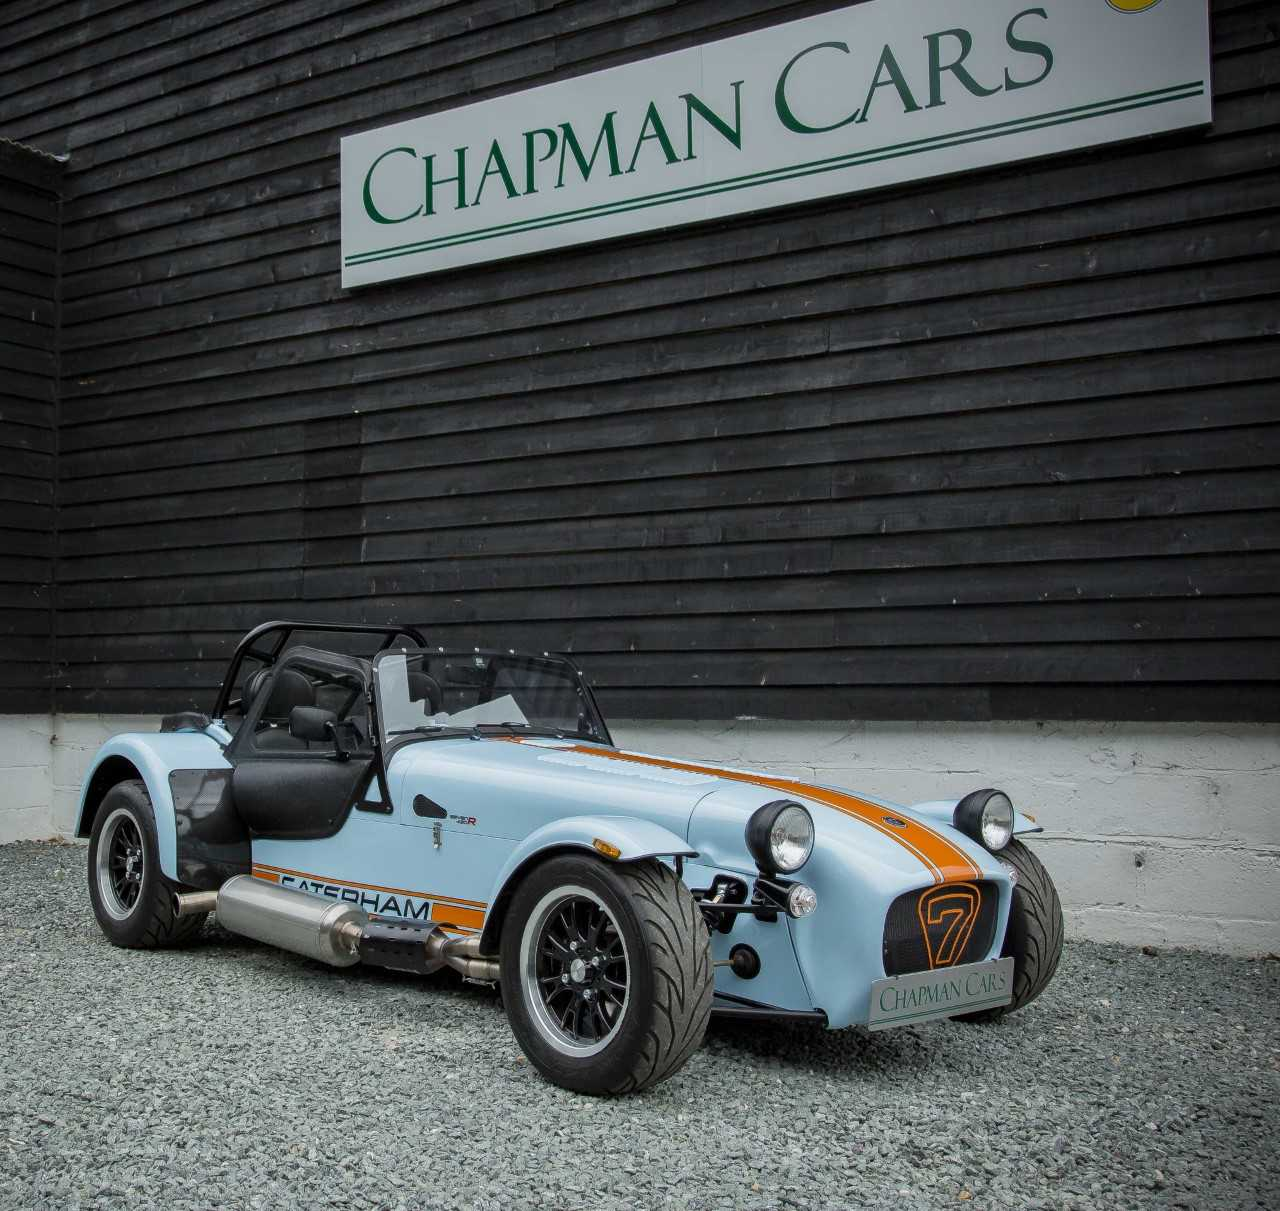 Used Caterham 7 For Sale: * NOW SOLD * Caterham 420R (2017) 695 Miles